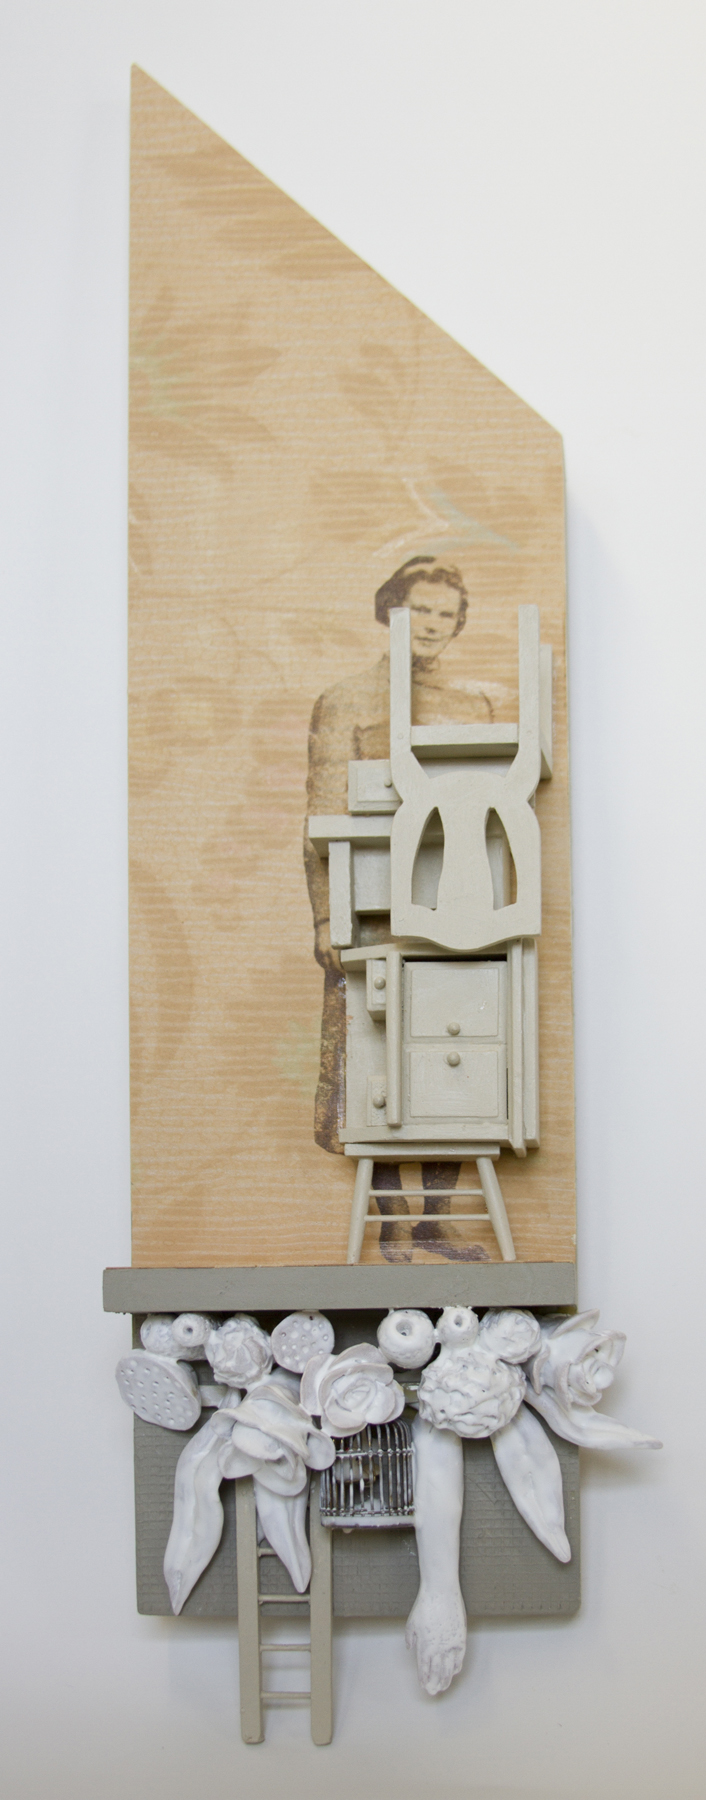 Chelsea Revelle,  Ayer: Hidden Mother Series,  Assemblage,   21x6x3